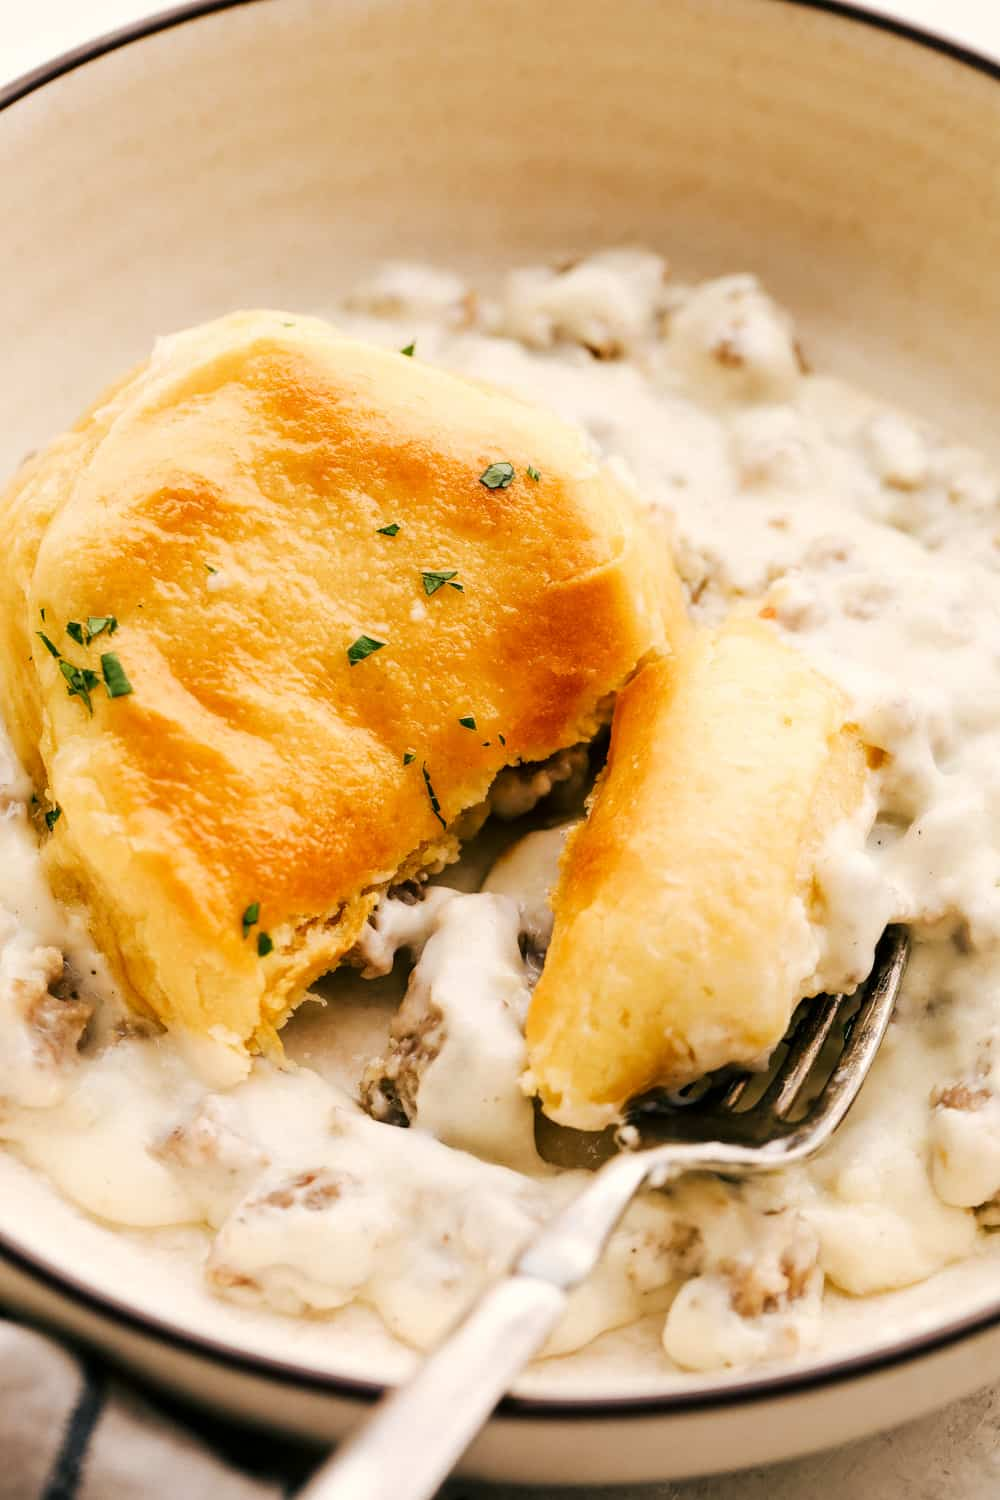 Golden flakey biscuits with savory rich sausage gravy on a plate.